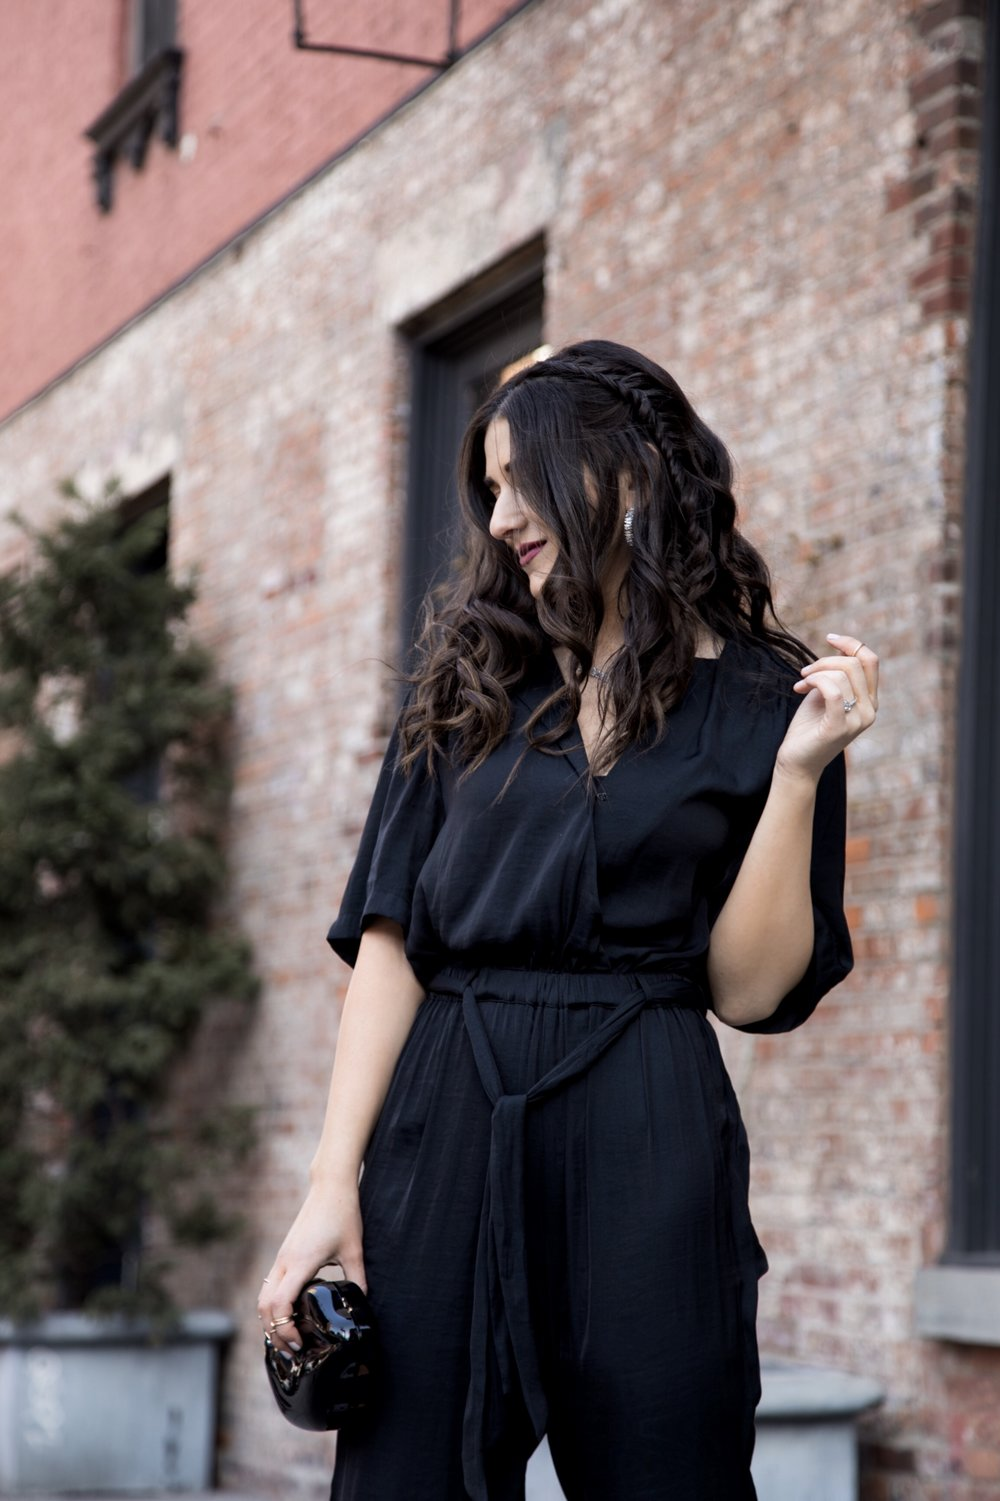 Where We're Going For Our Honeymoon Black Silk Jumpsuit Bow Mules Esther Santer Fashion Blog NYC Street Style Blogger Outfit OOTD Trendy Urban Outfitters Betsey Johnson Brand Collab Jeweled Shoes Earrings Hoops Melissa Lovy Necklace Lips Clutch Braid.jpg